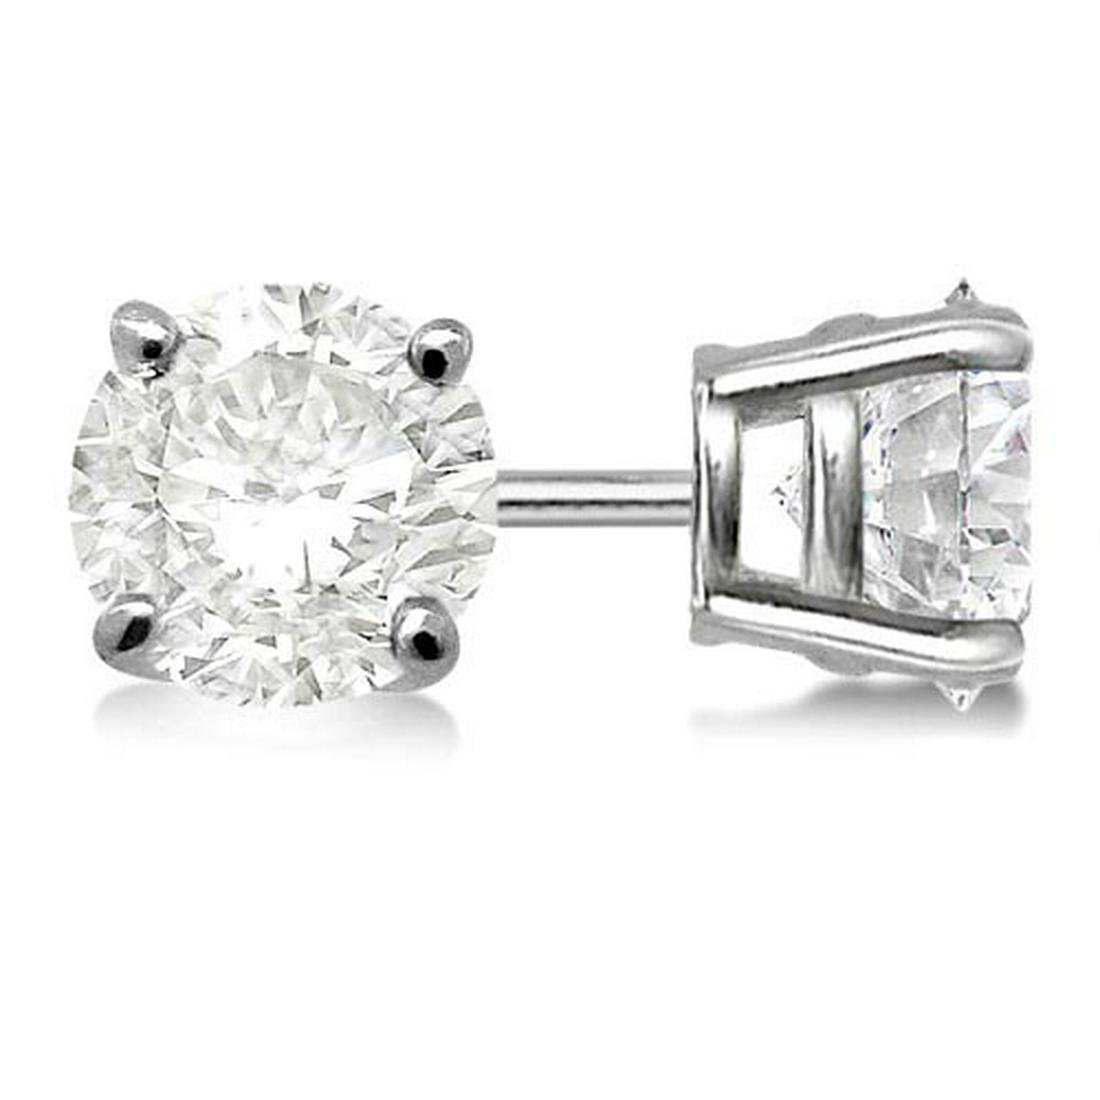 Certified 0.55 CTW Round Diamond Stud Earrings J/SI2